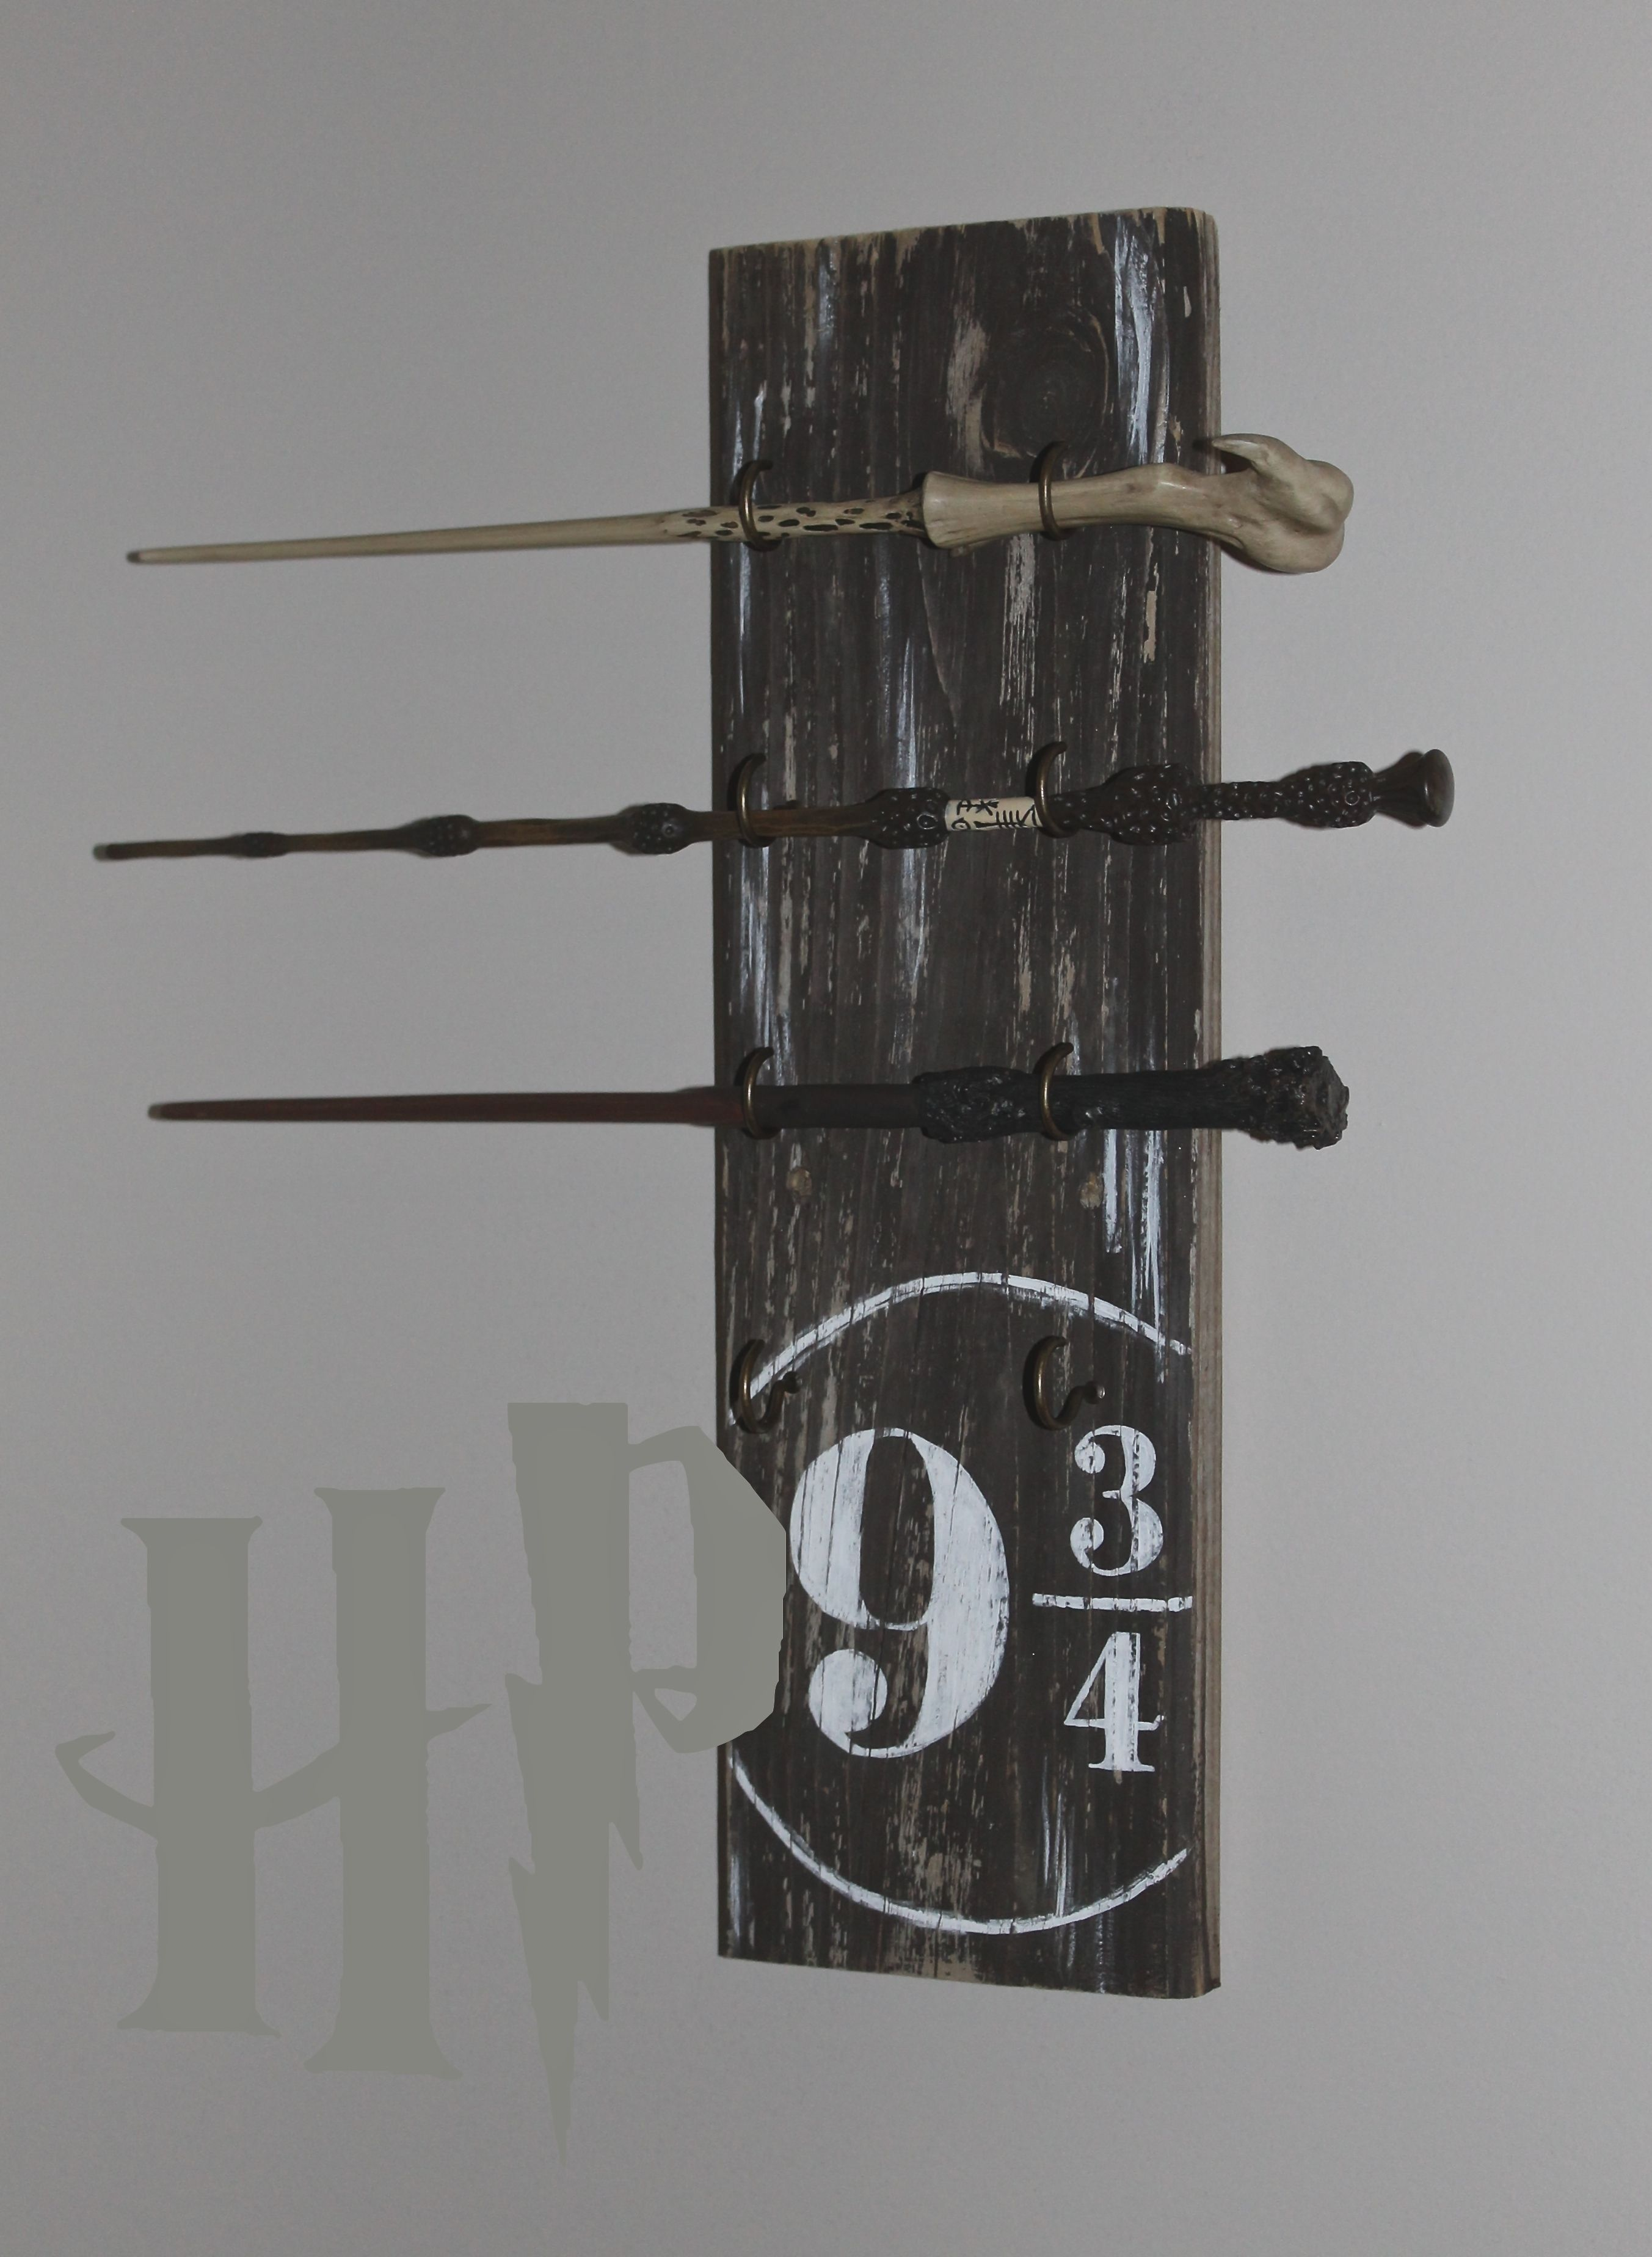 harry potter wand stand odds pinterest harry potter wand wand and harry potter. Black Bedroom Furniture Sets. Home Design Ideas